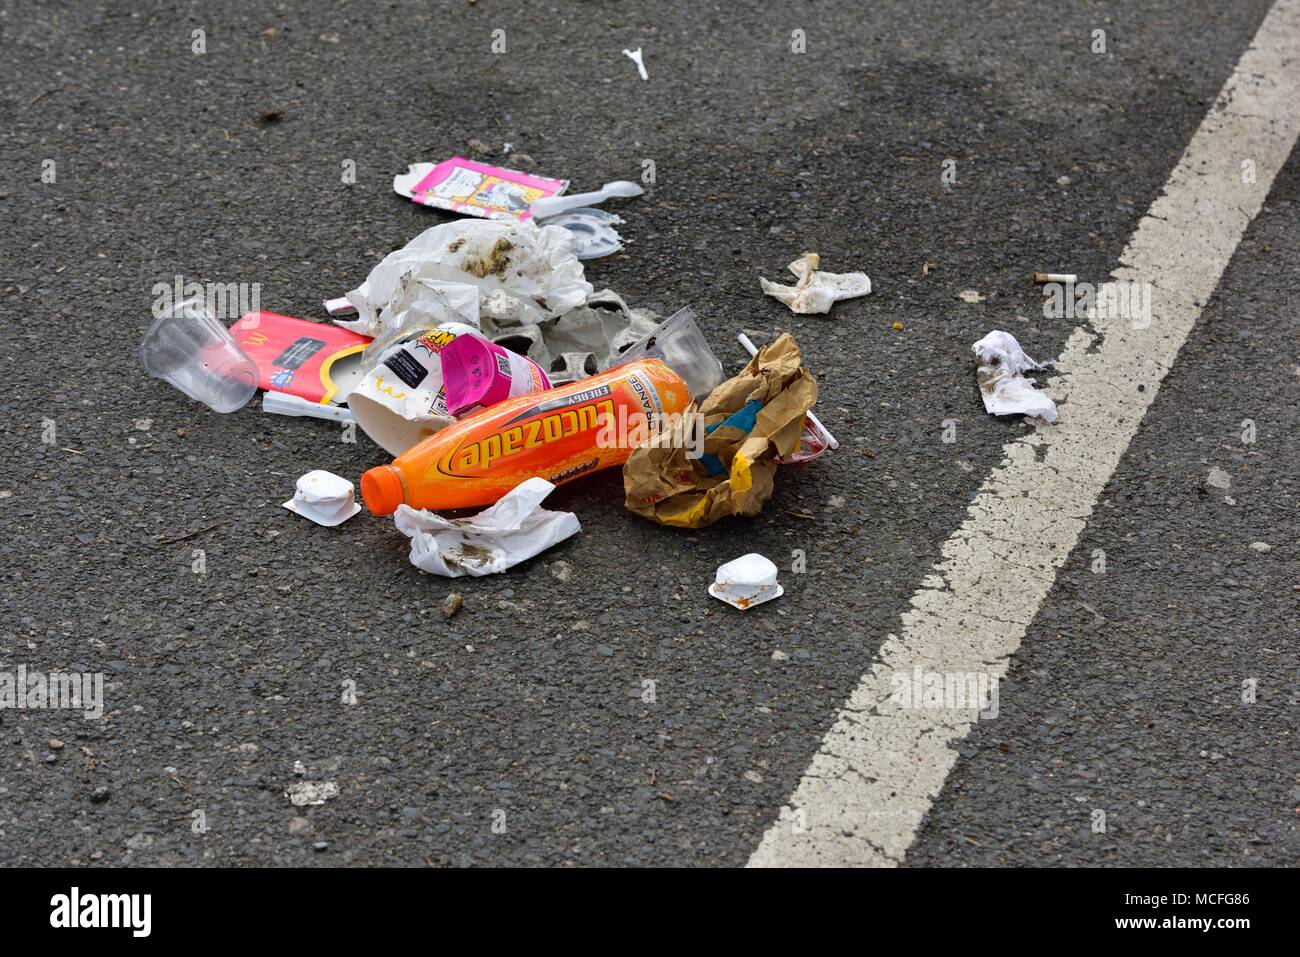 Rubbish dumped out of a car in a UK car parking space - Stock Image